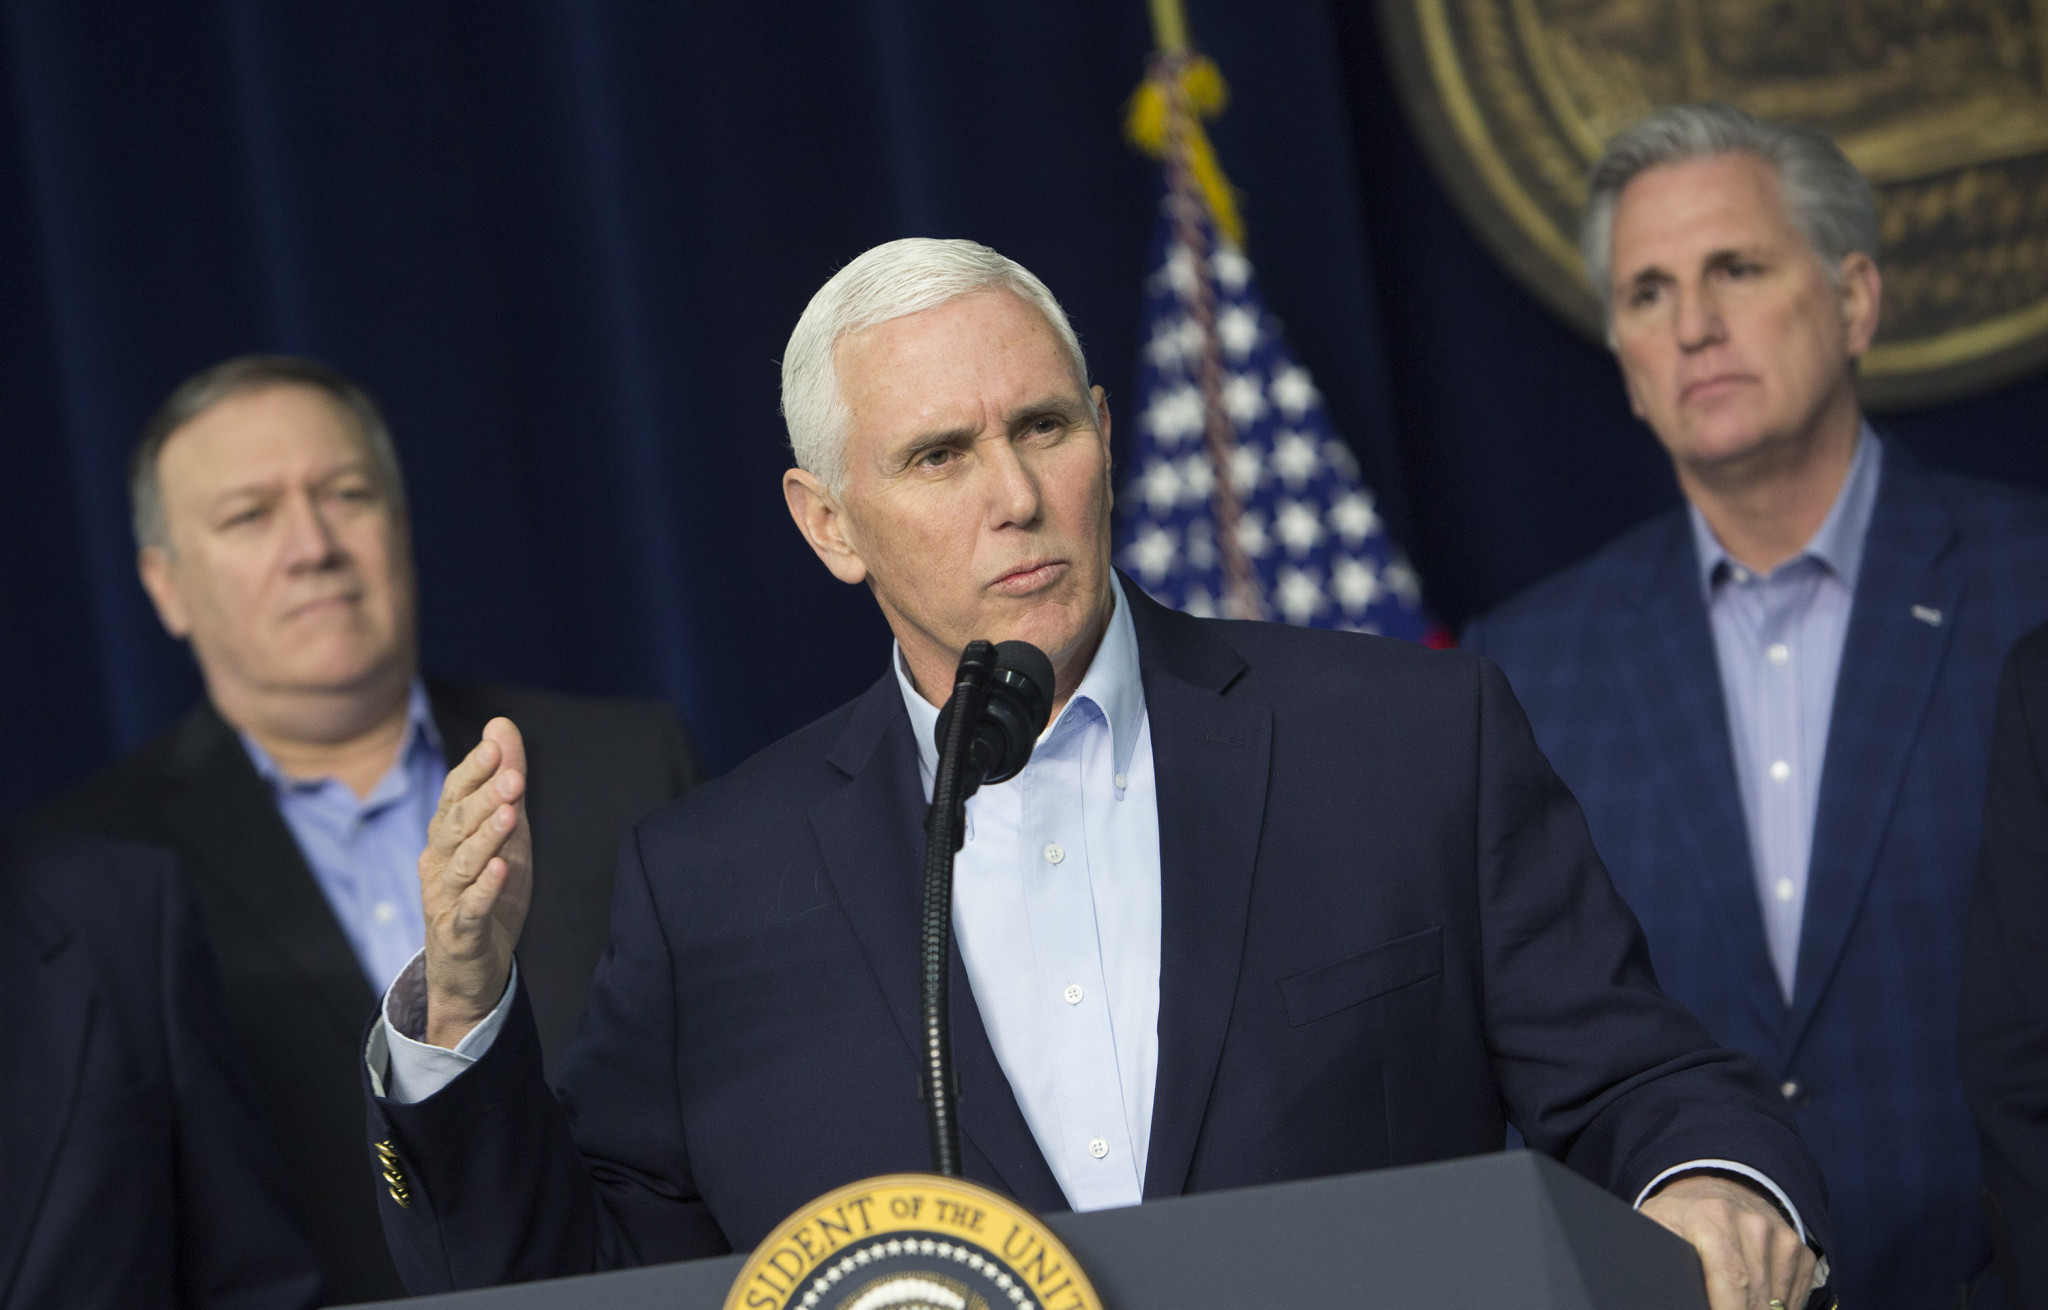 Vice President Mike Pence is expected to lead the US delegation at Pyeongchang 2018 ©Getty Images